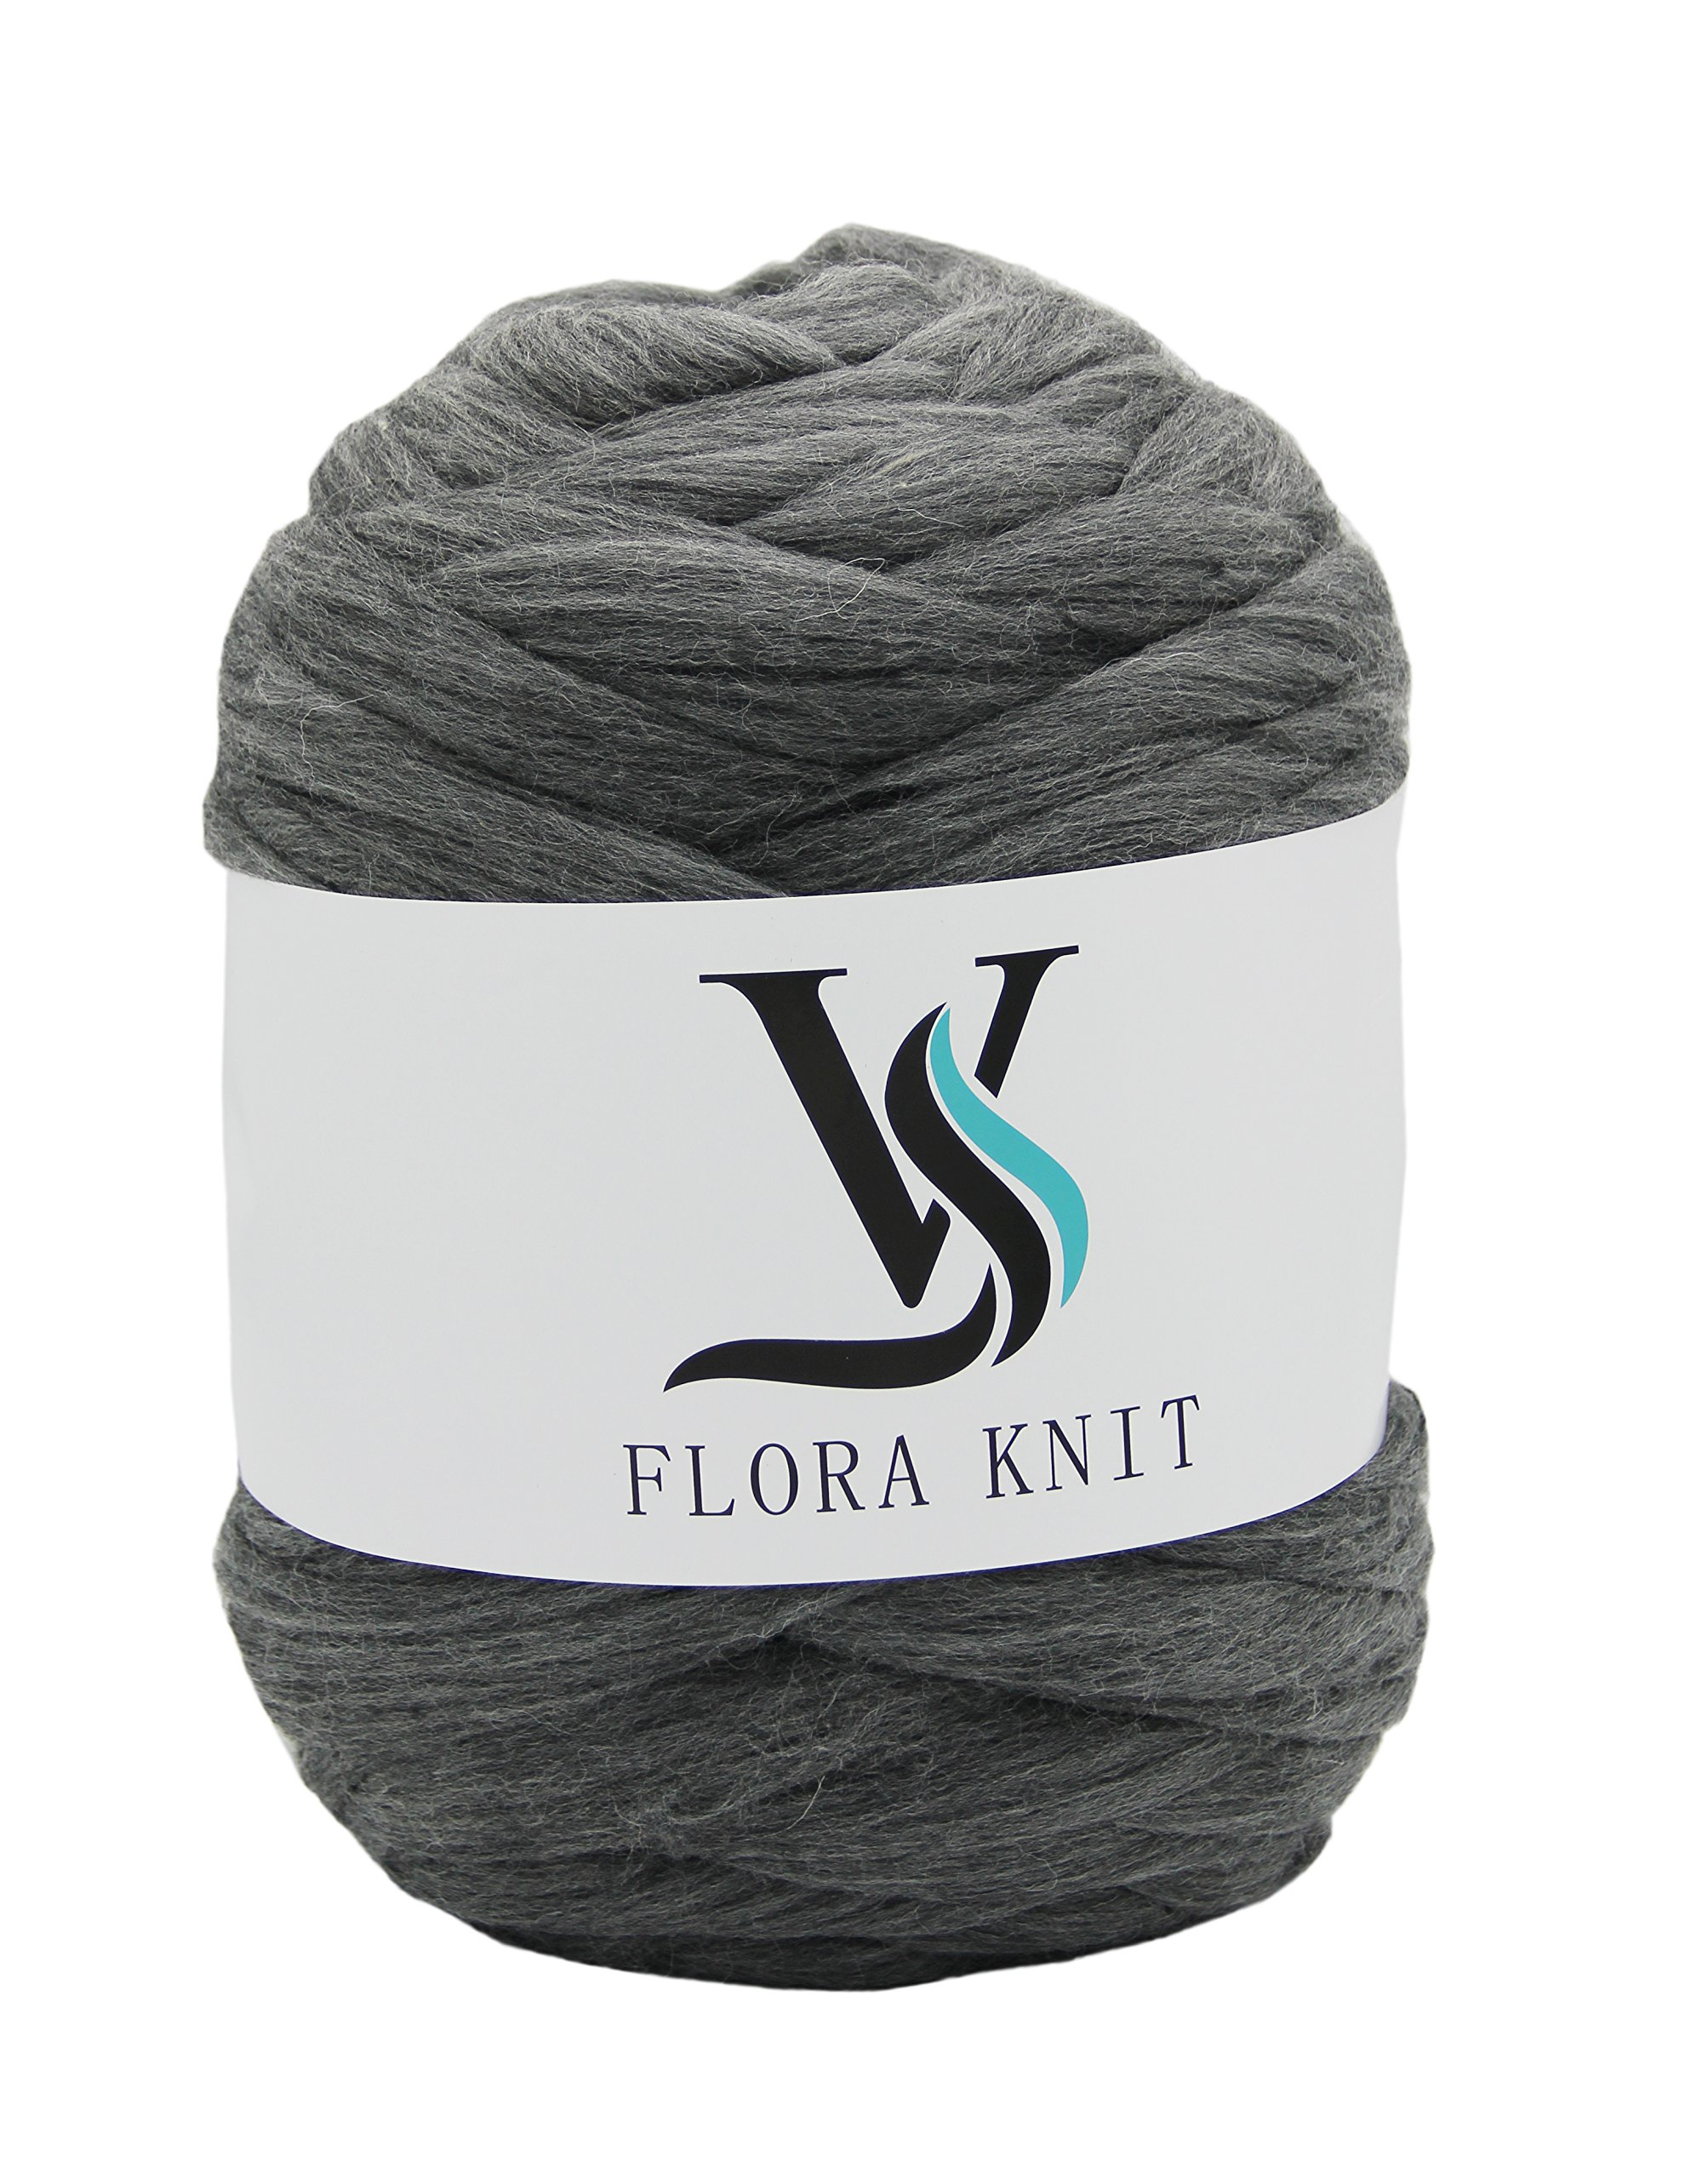 Merino Wool Super Chunky Yarn- Bulky Roving Yarn for Finger Knitting,Crocheting Felting,Making Rugs Blanket and Crafts by FLORAKNIT (Gray, Super Chunky-4.4LB)